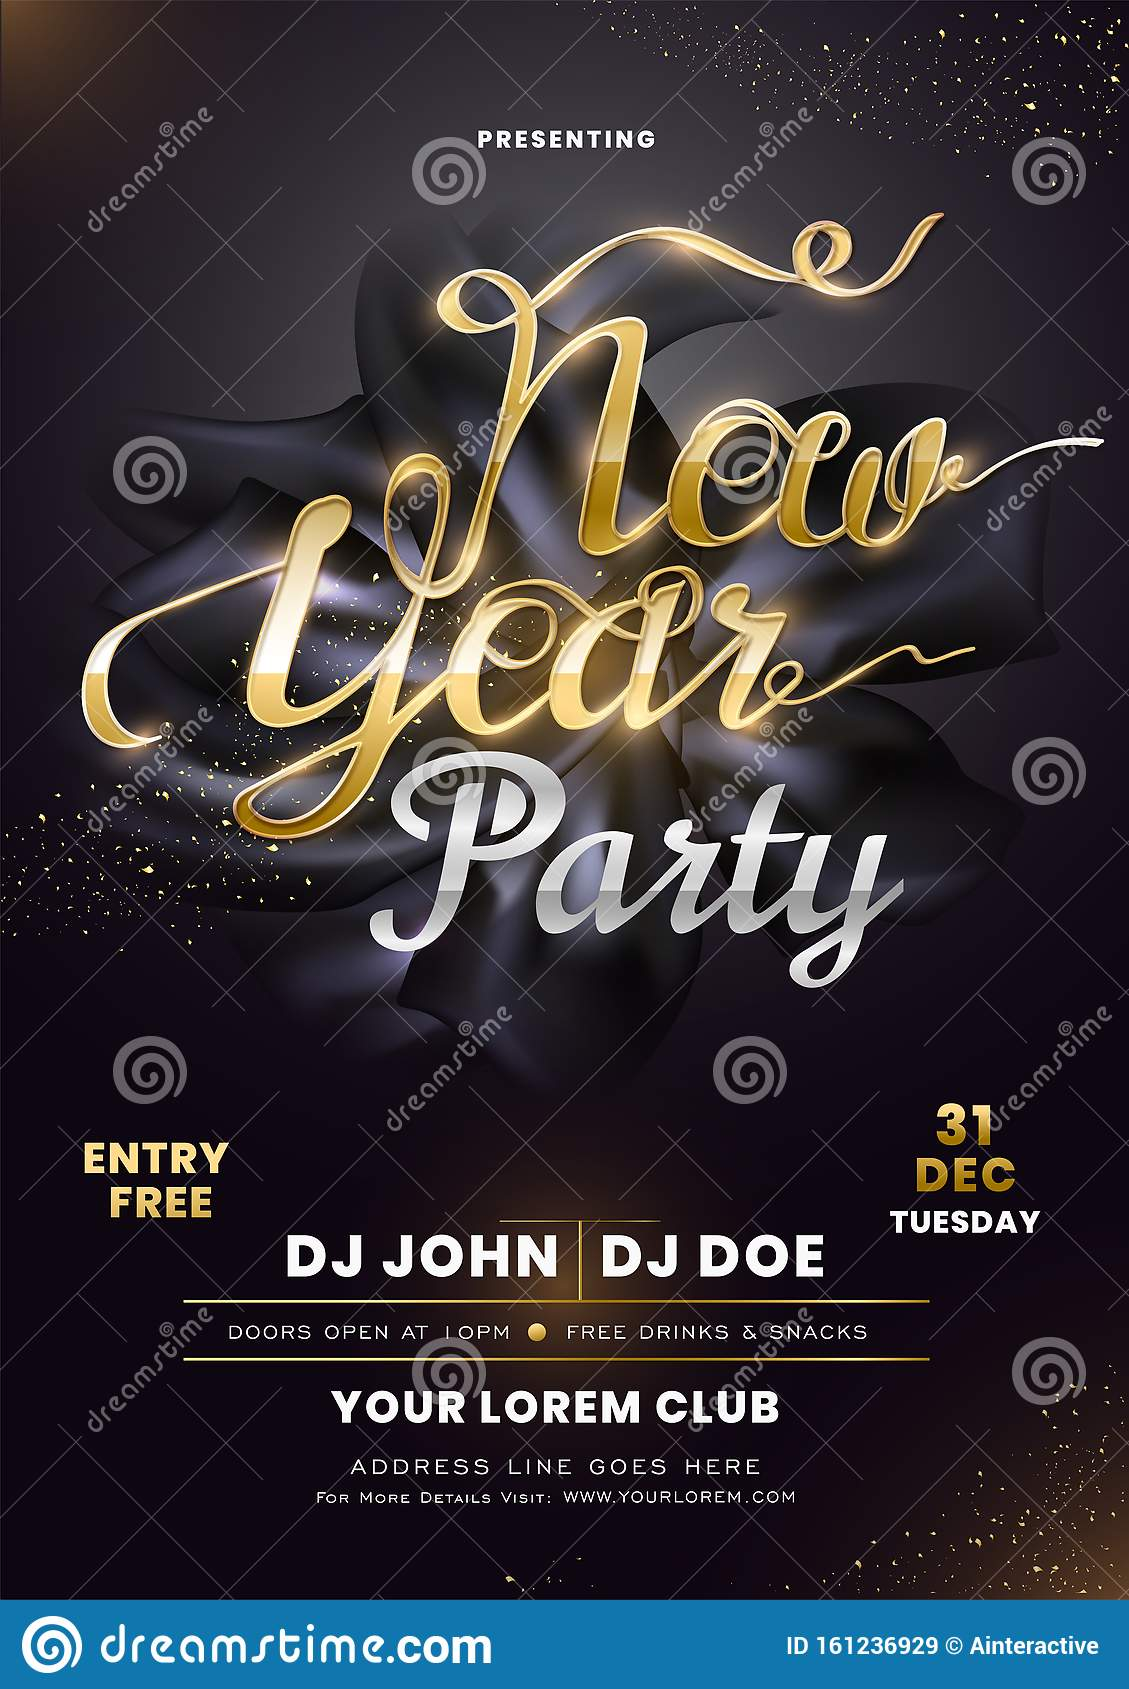 invitation card design with calligraphy new year party on